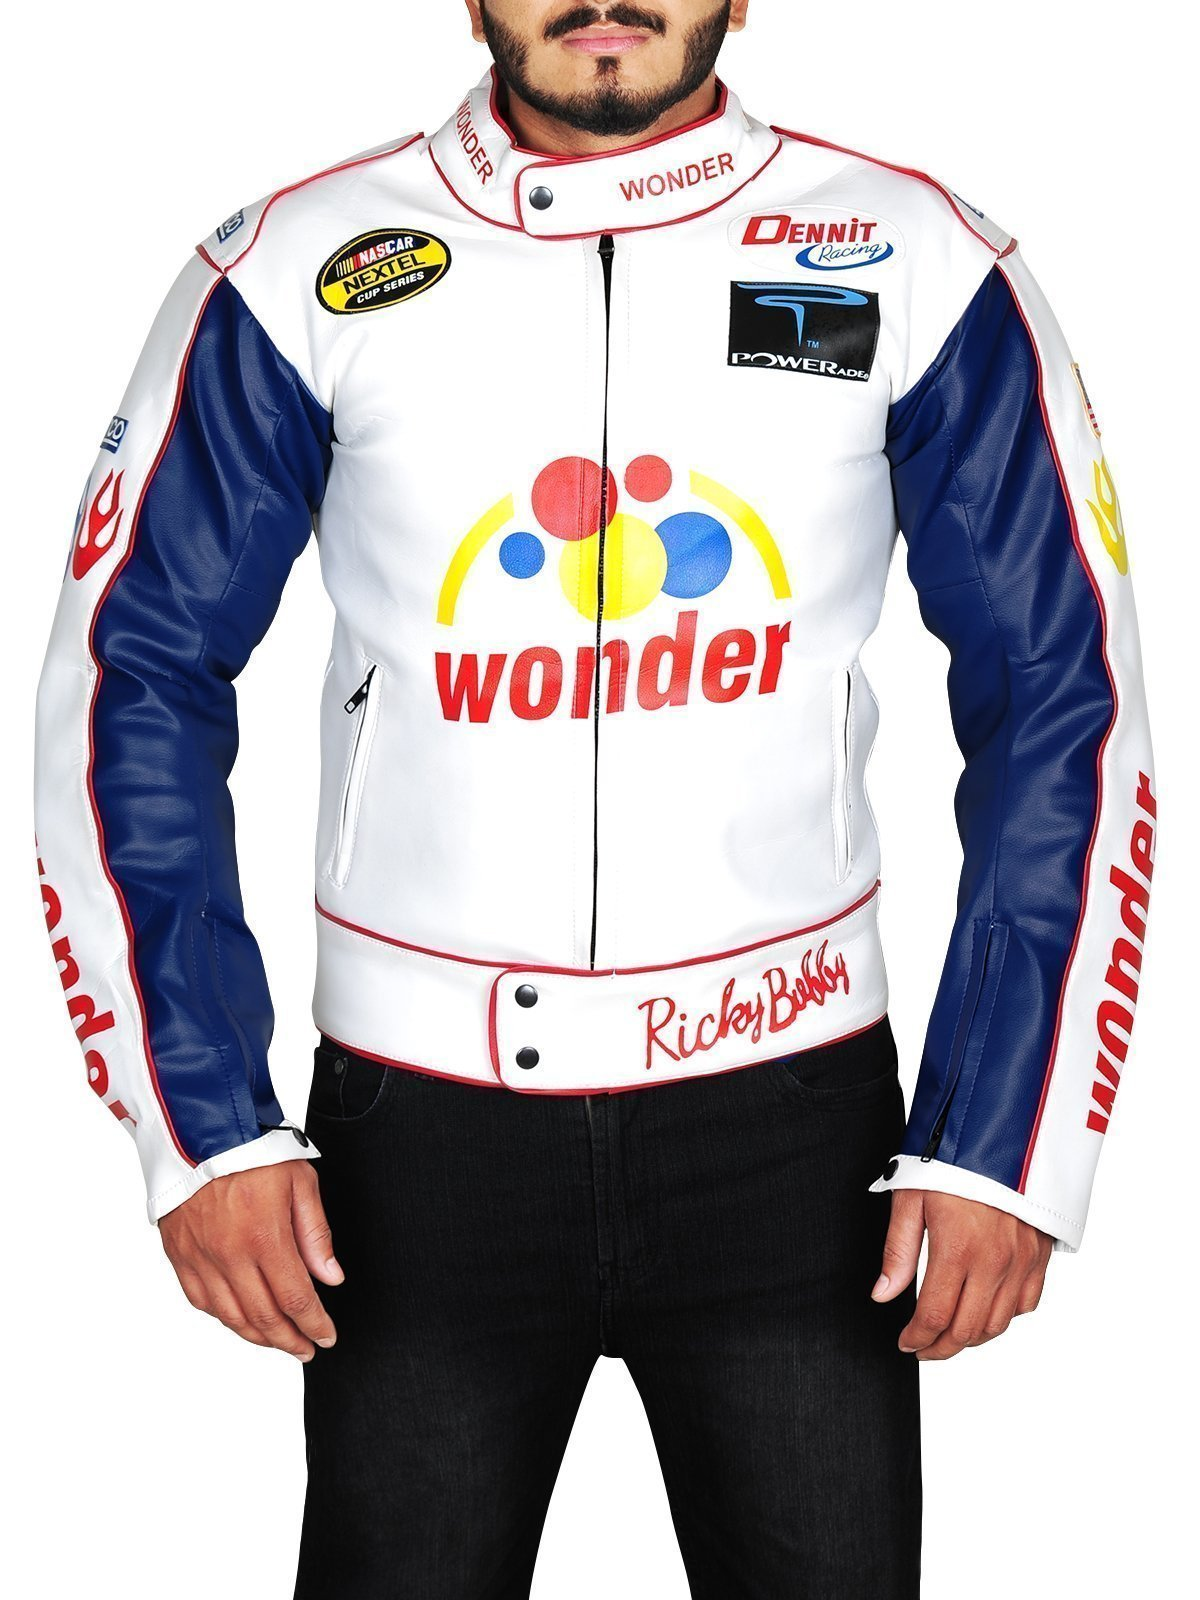 Ricky Bobby Talladega Nights Wonder Bread Jacket Top Celebs Jackets